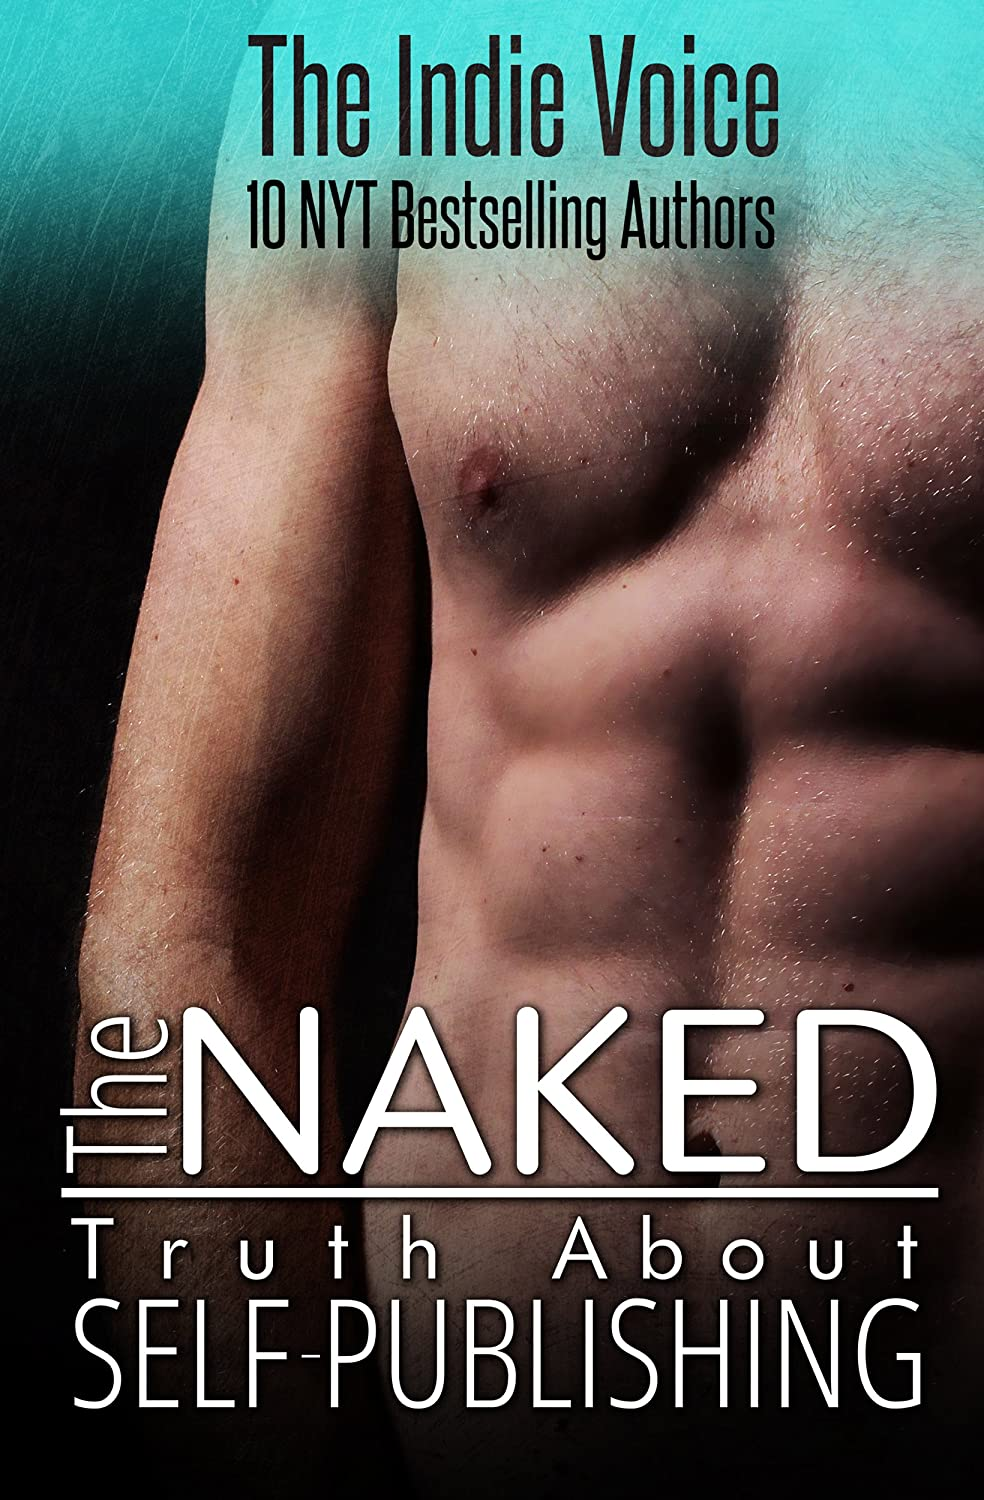 The Naked Truth About Self Publishing by The Indie Voice